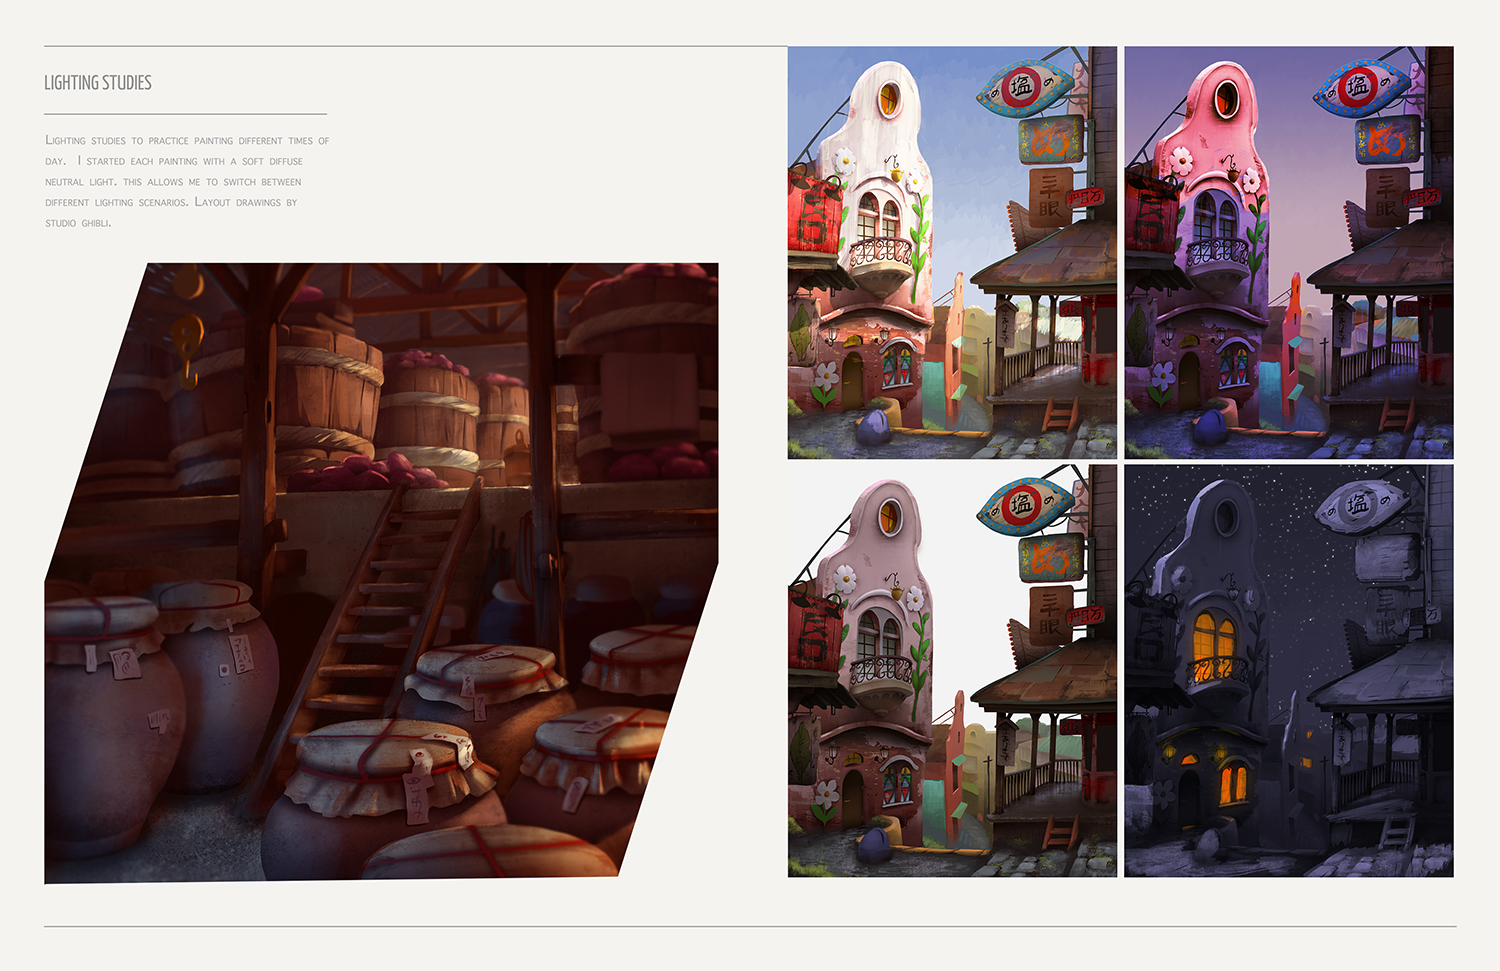 002_lightingstudies.jpg